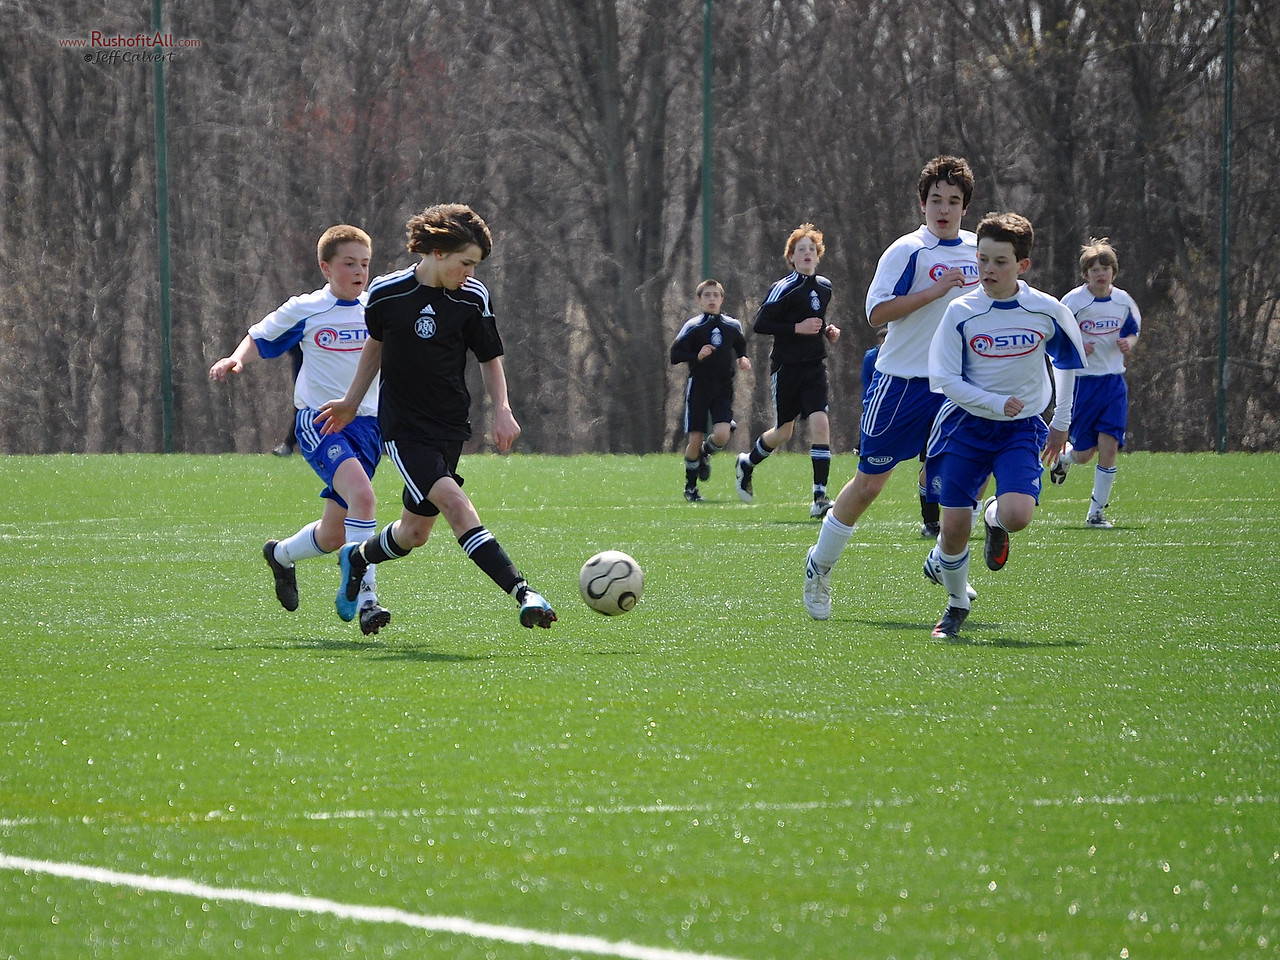 STN Rangers (U13) v. West Chester United Predators at Baltimore Mania Tournament in Columbia, MD on March 27, 2010.